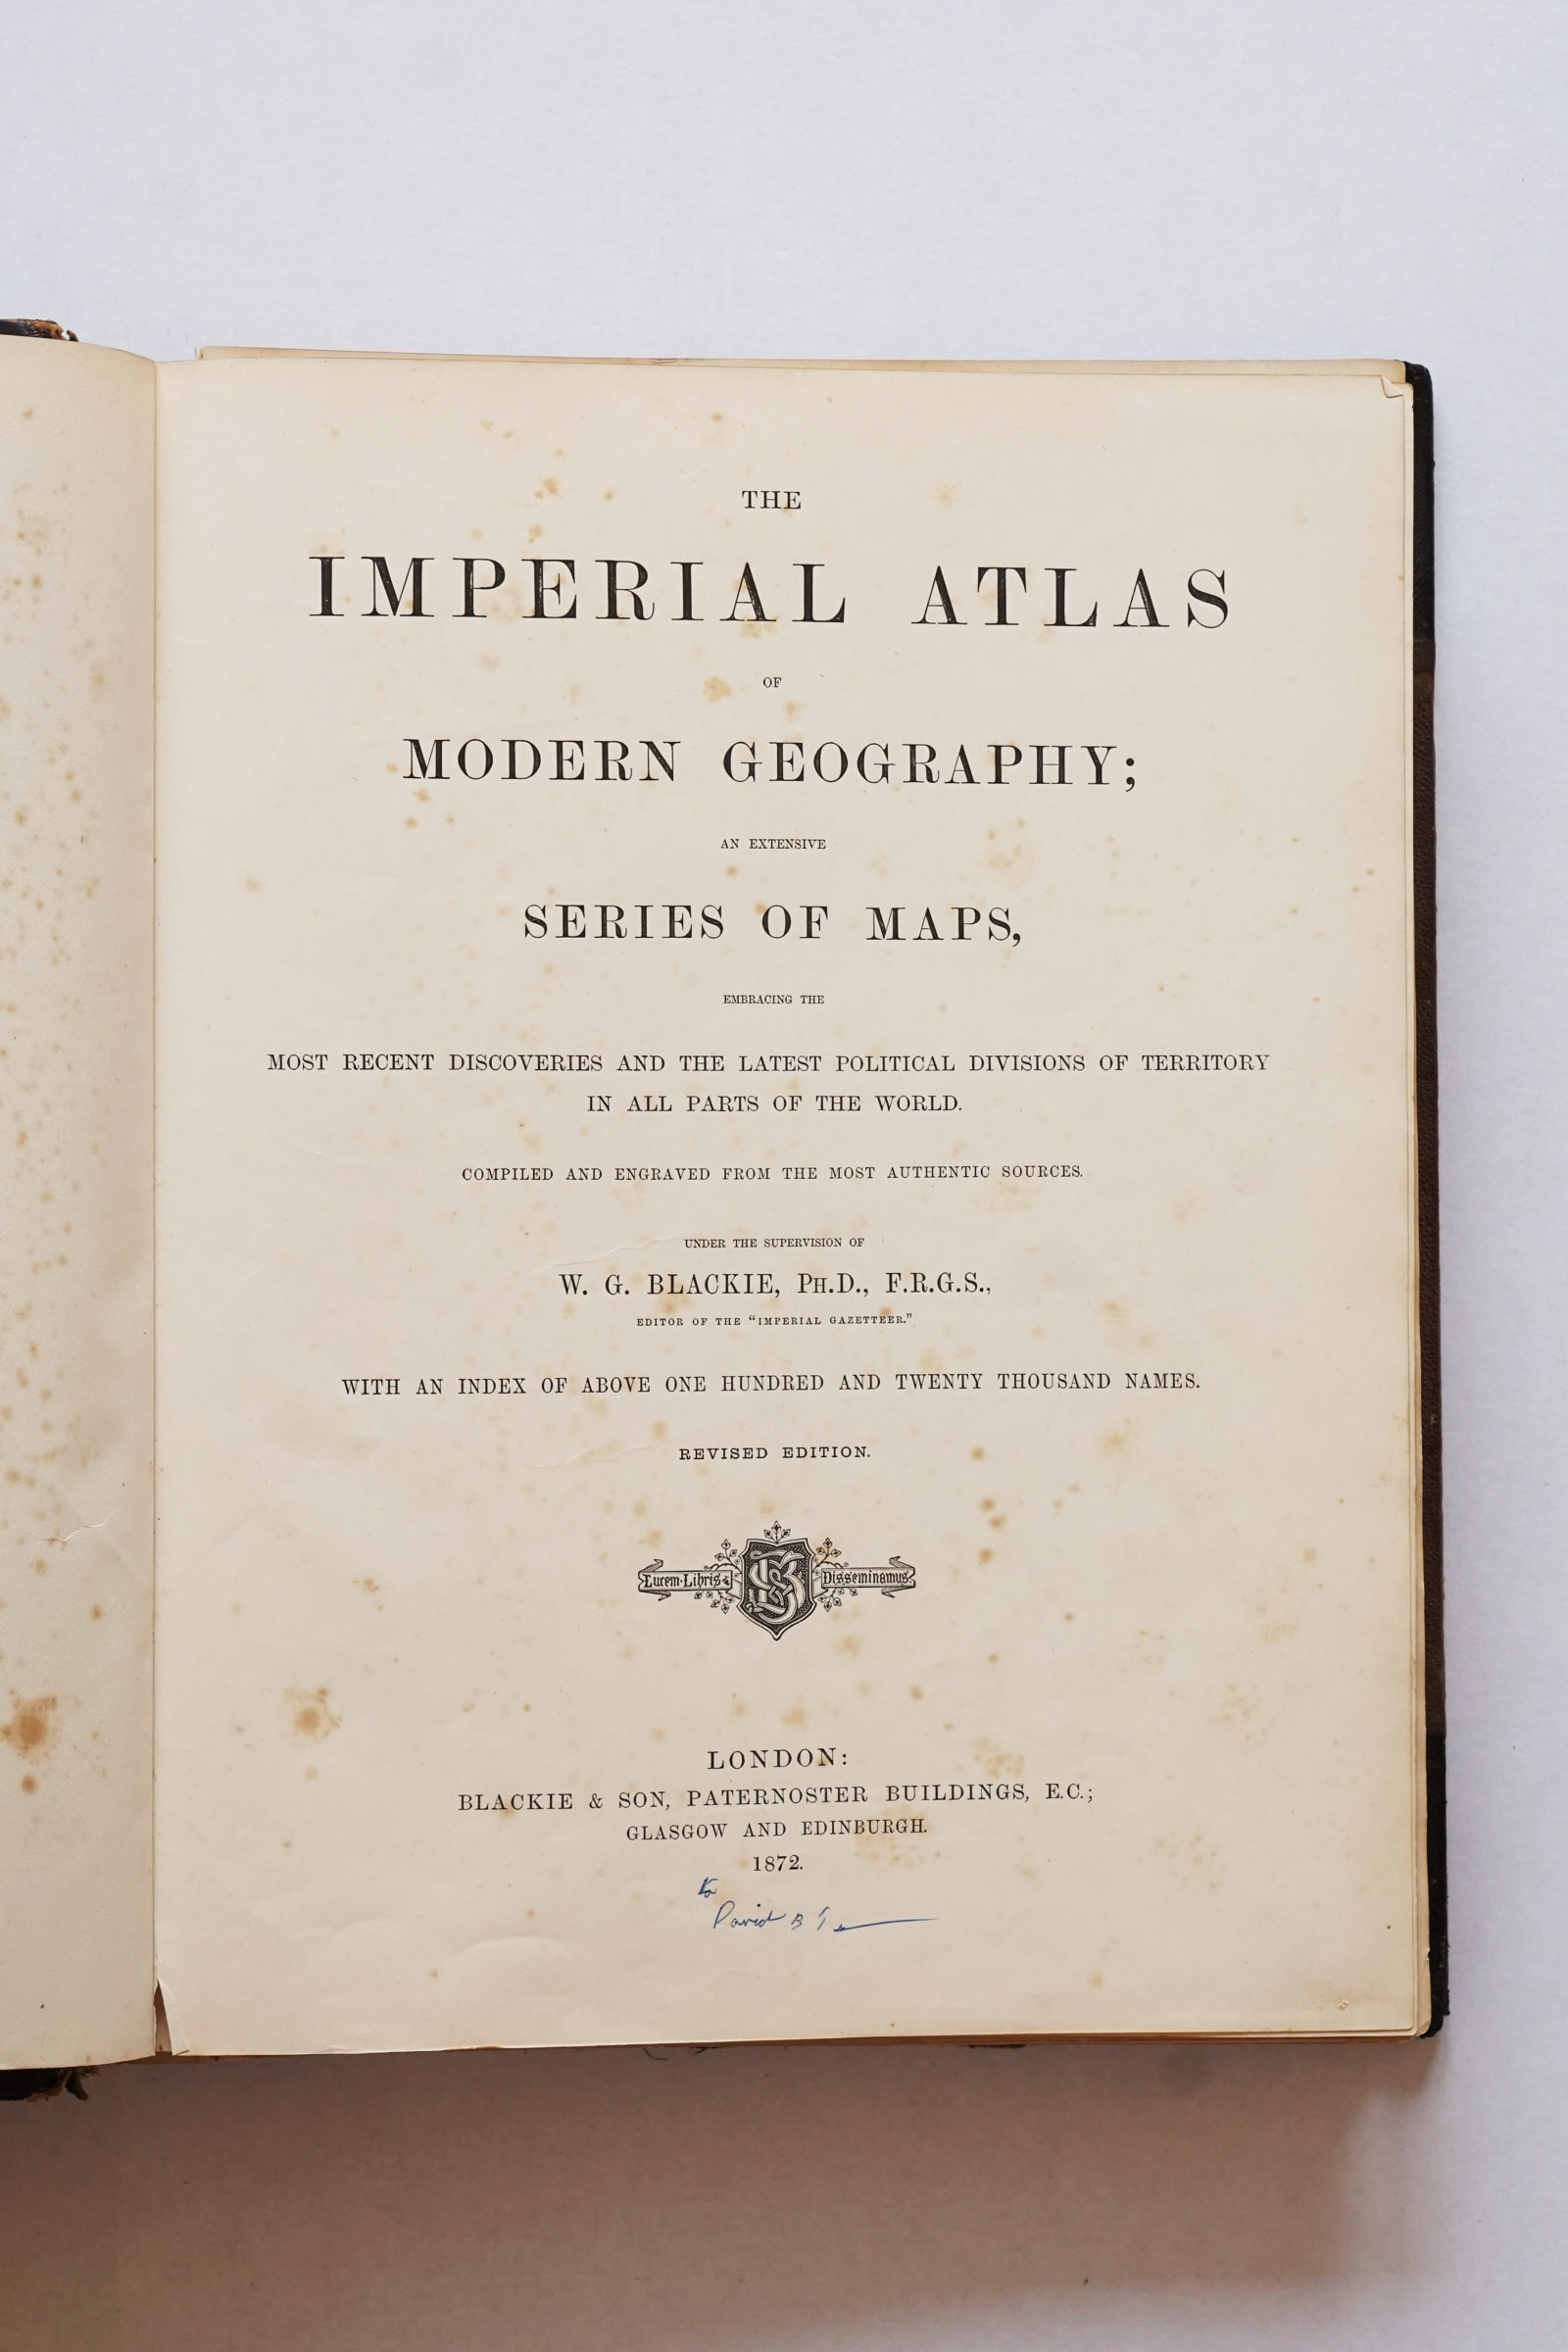 The Imperial Atlas of Modern Geography